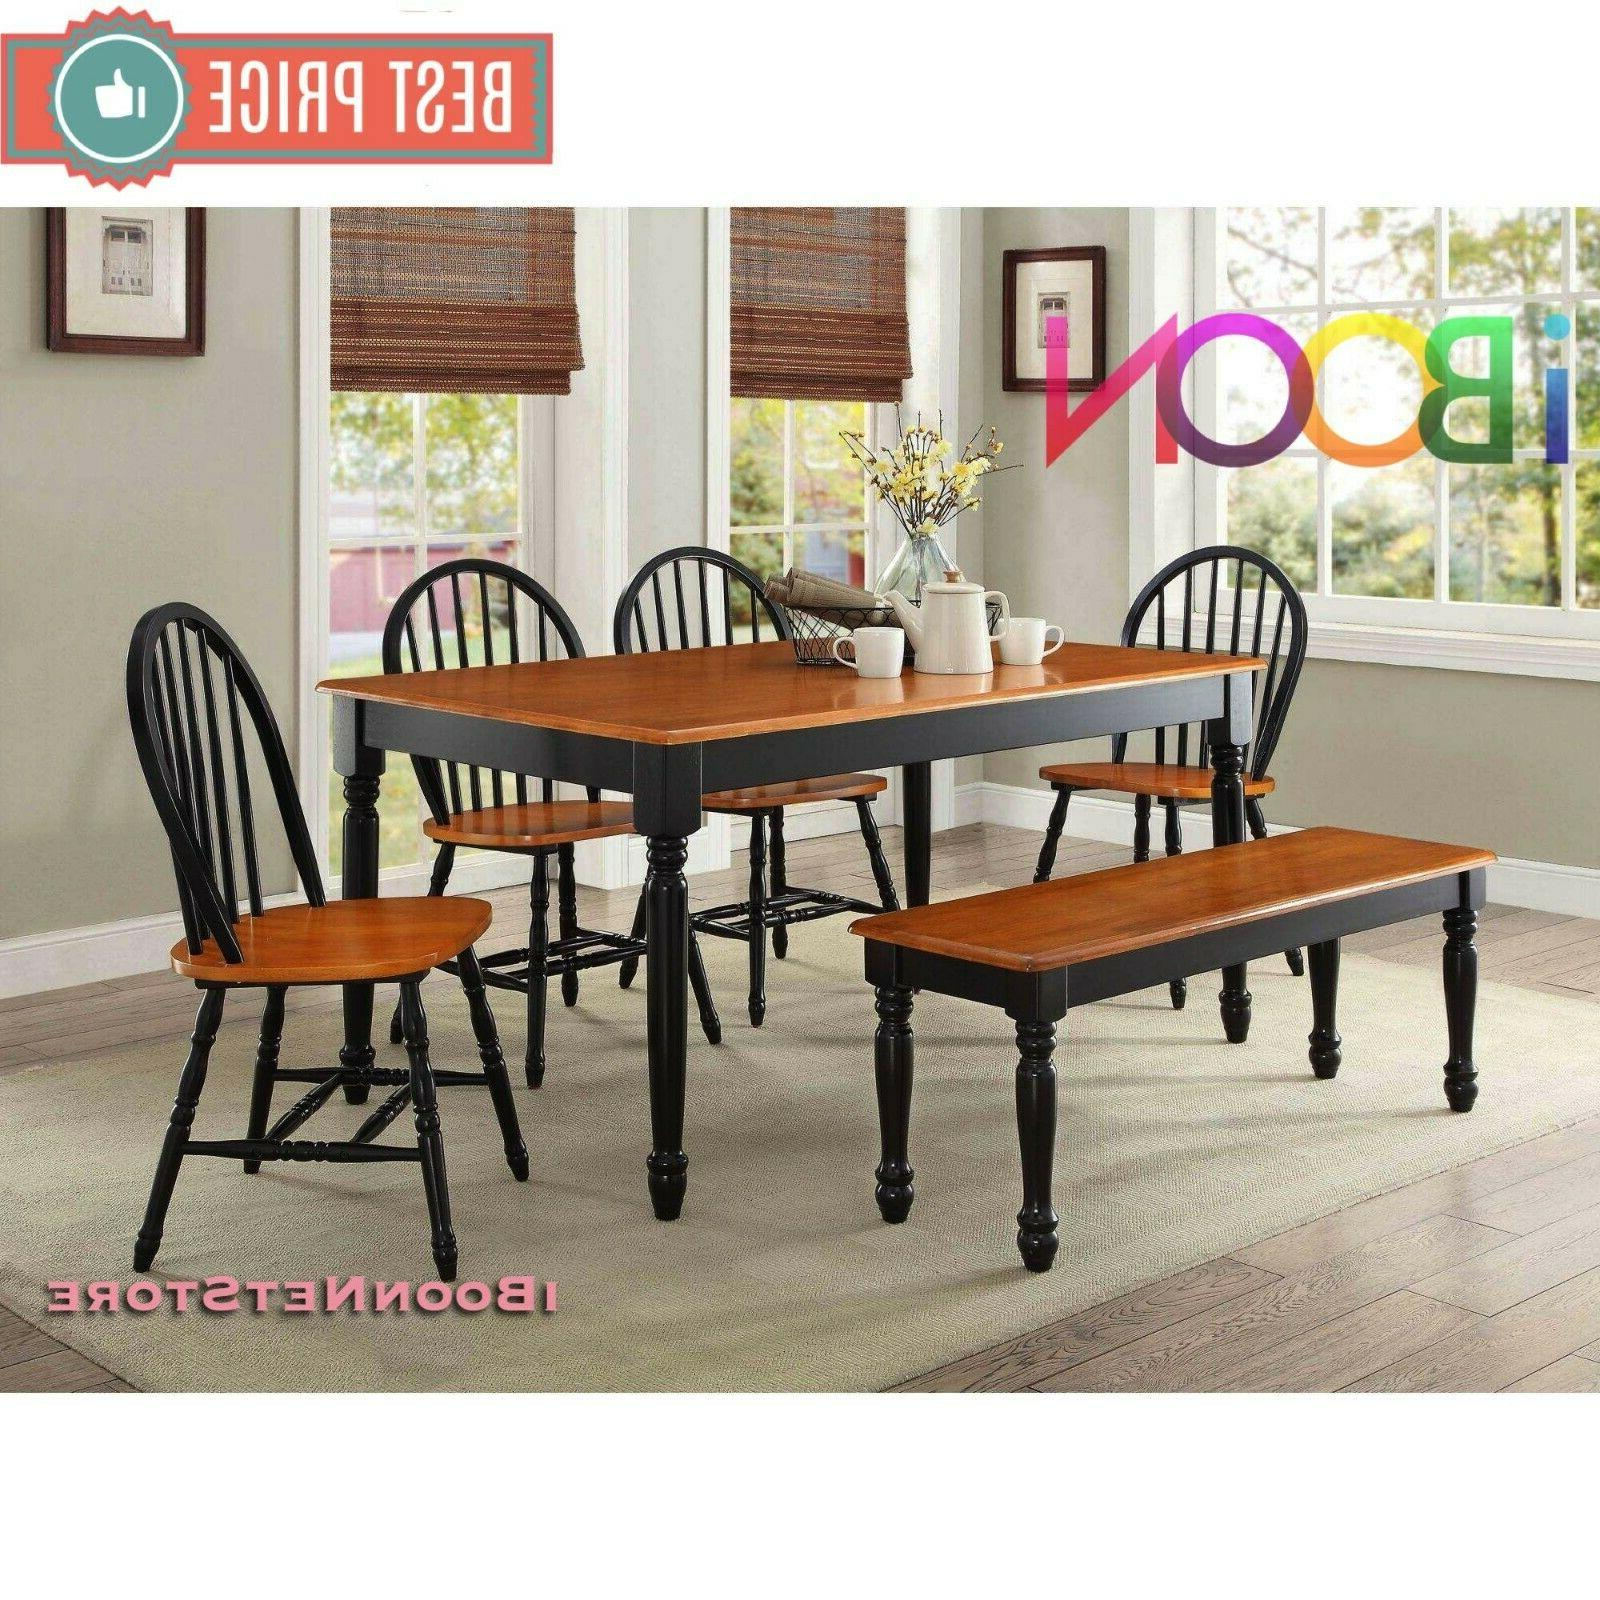 Wood Dinning Table Seat Home Dining Room Color Seat